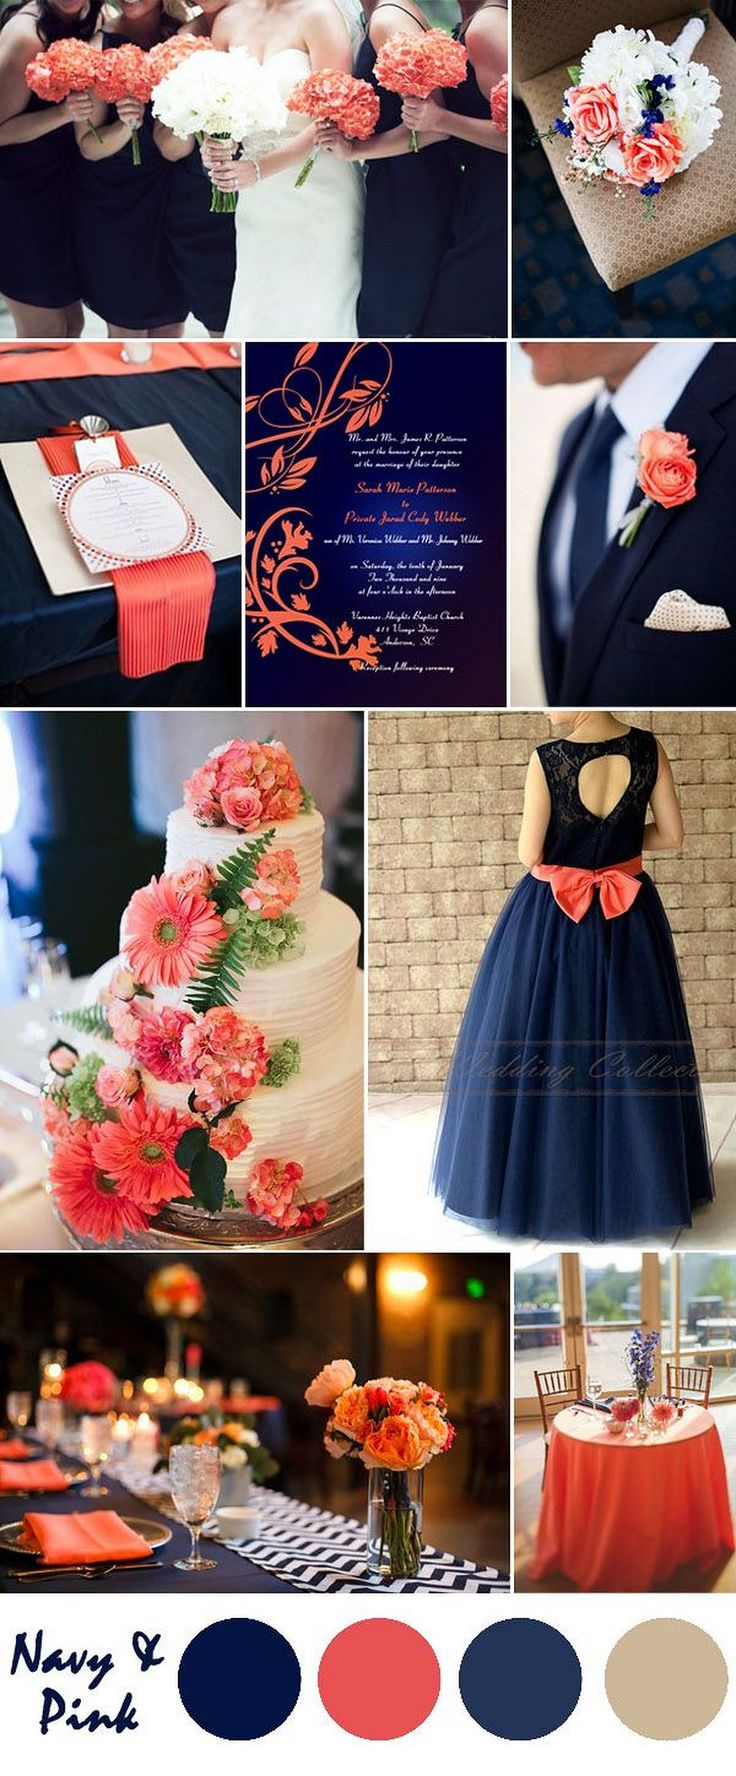 Best 25 navy blue weddings ideas on pinterest blue for Navy blue wedding theme ideas